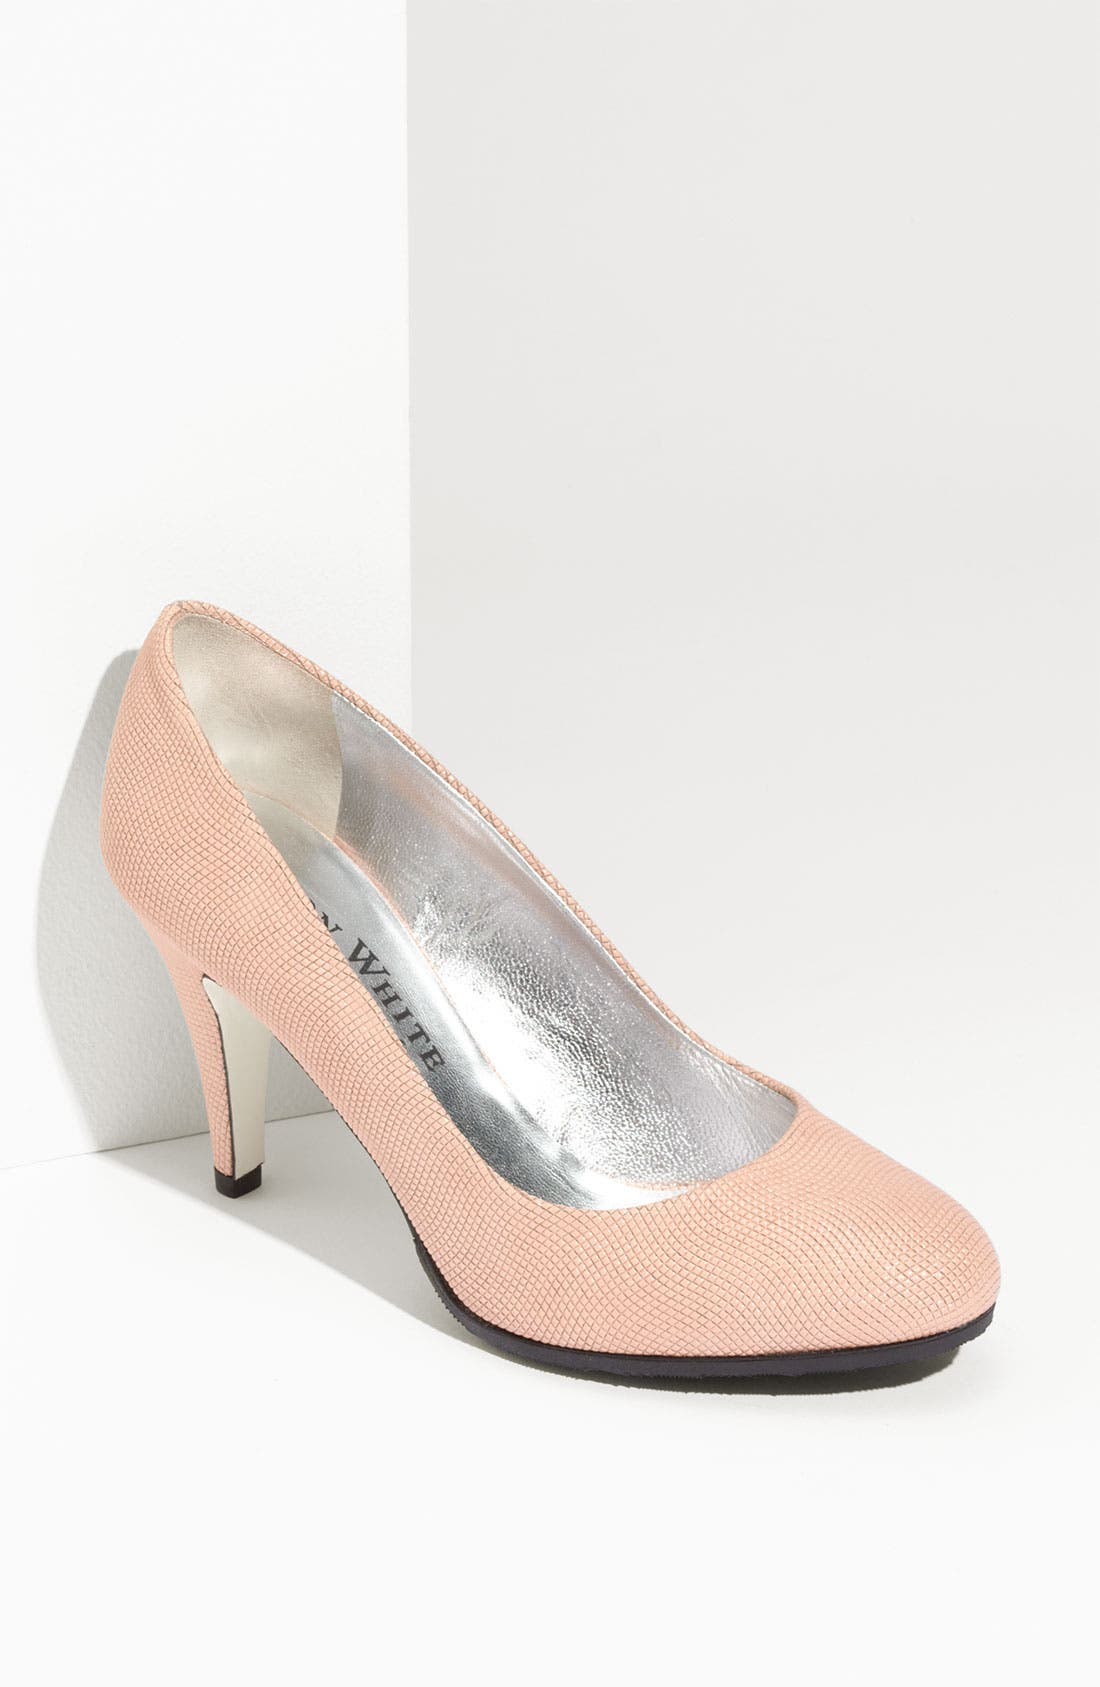 Alternate Image 1 Selected - Ron White 'Chanelle' Pump